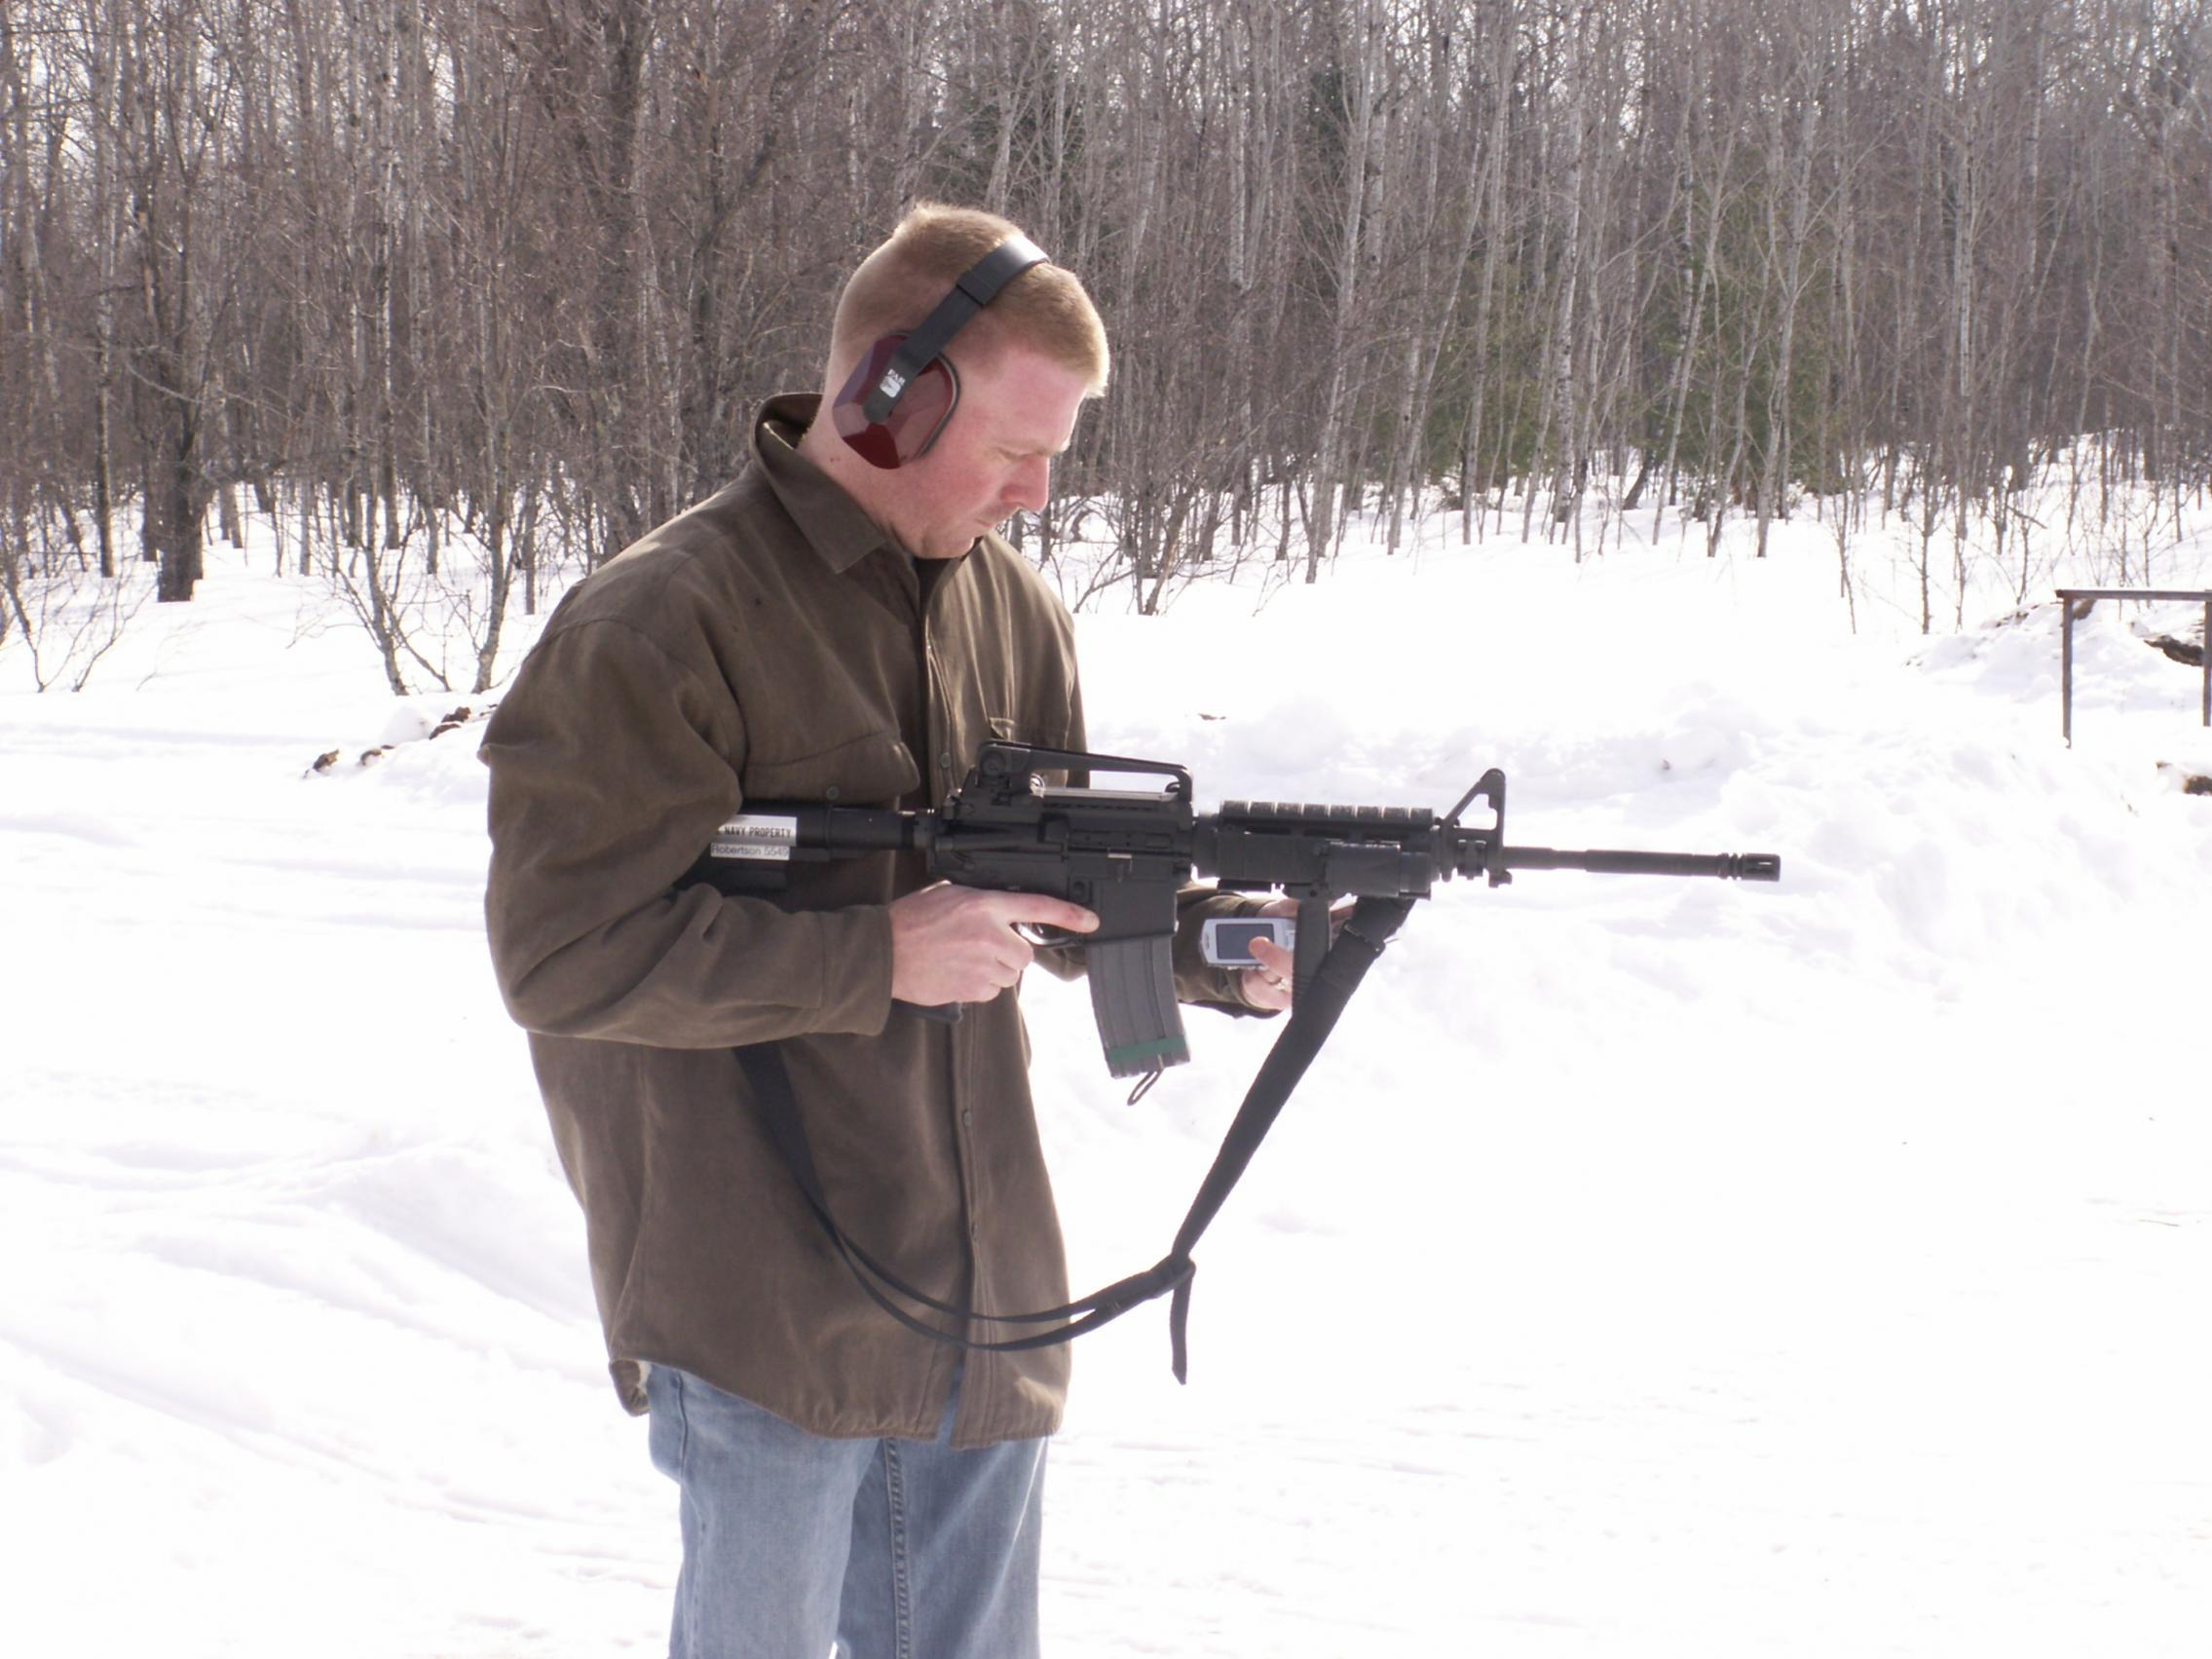 Range day-weekend-shooting-002.jpg